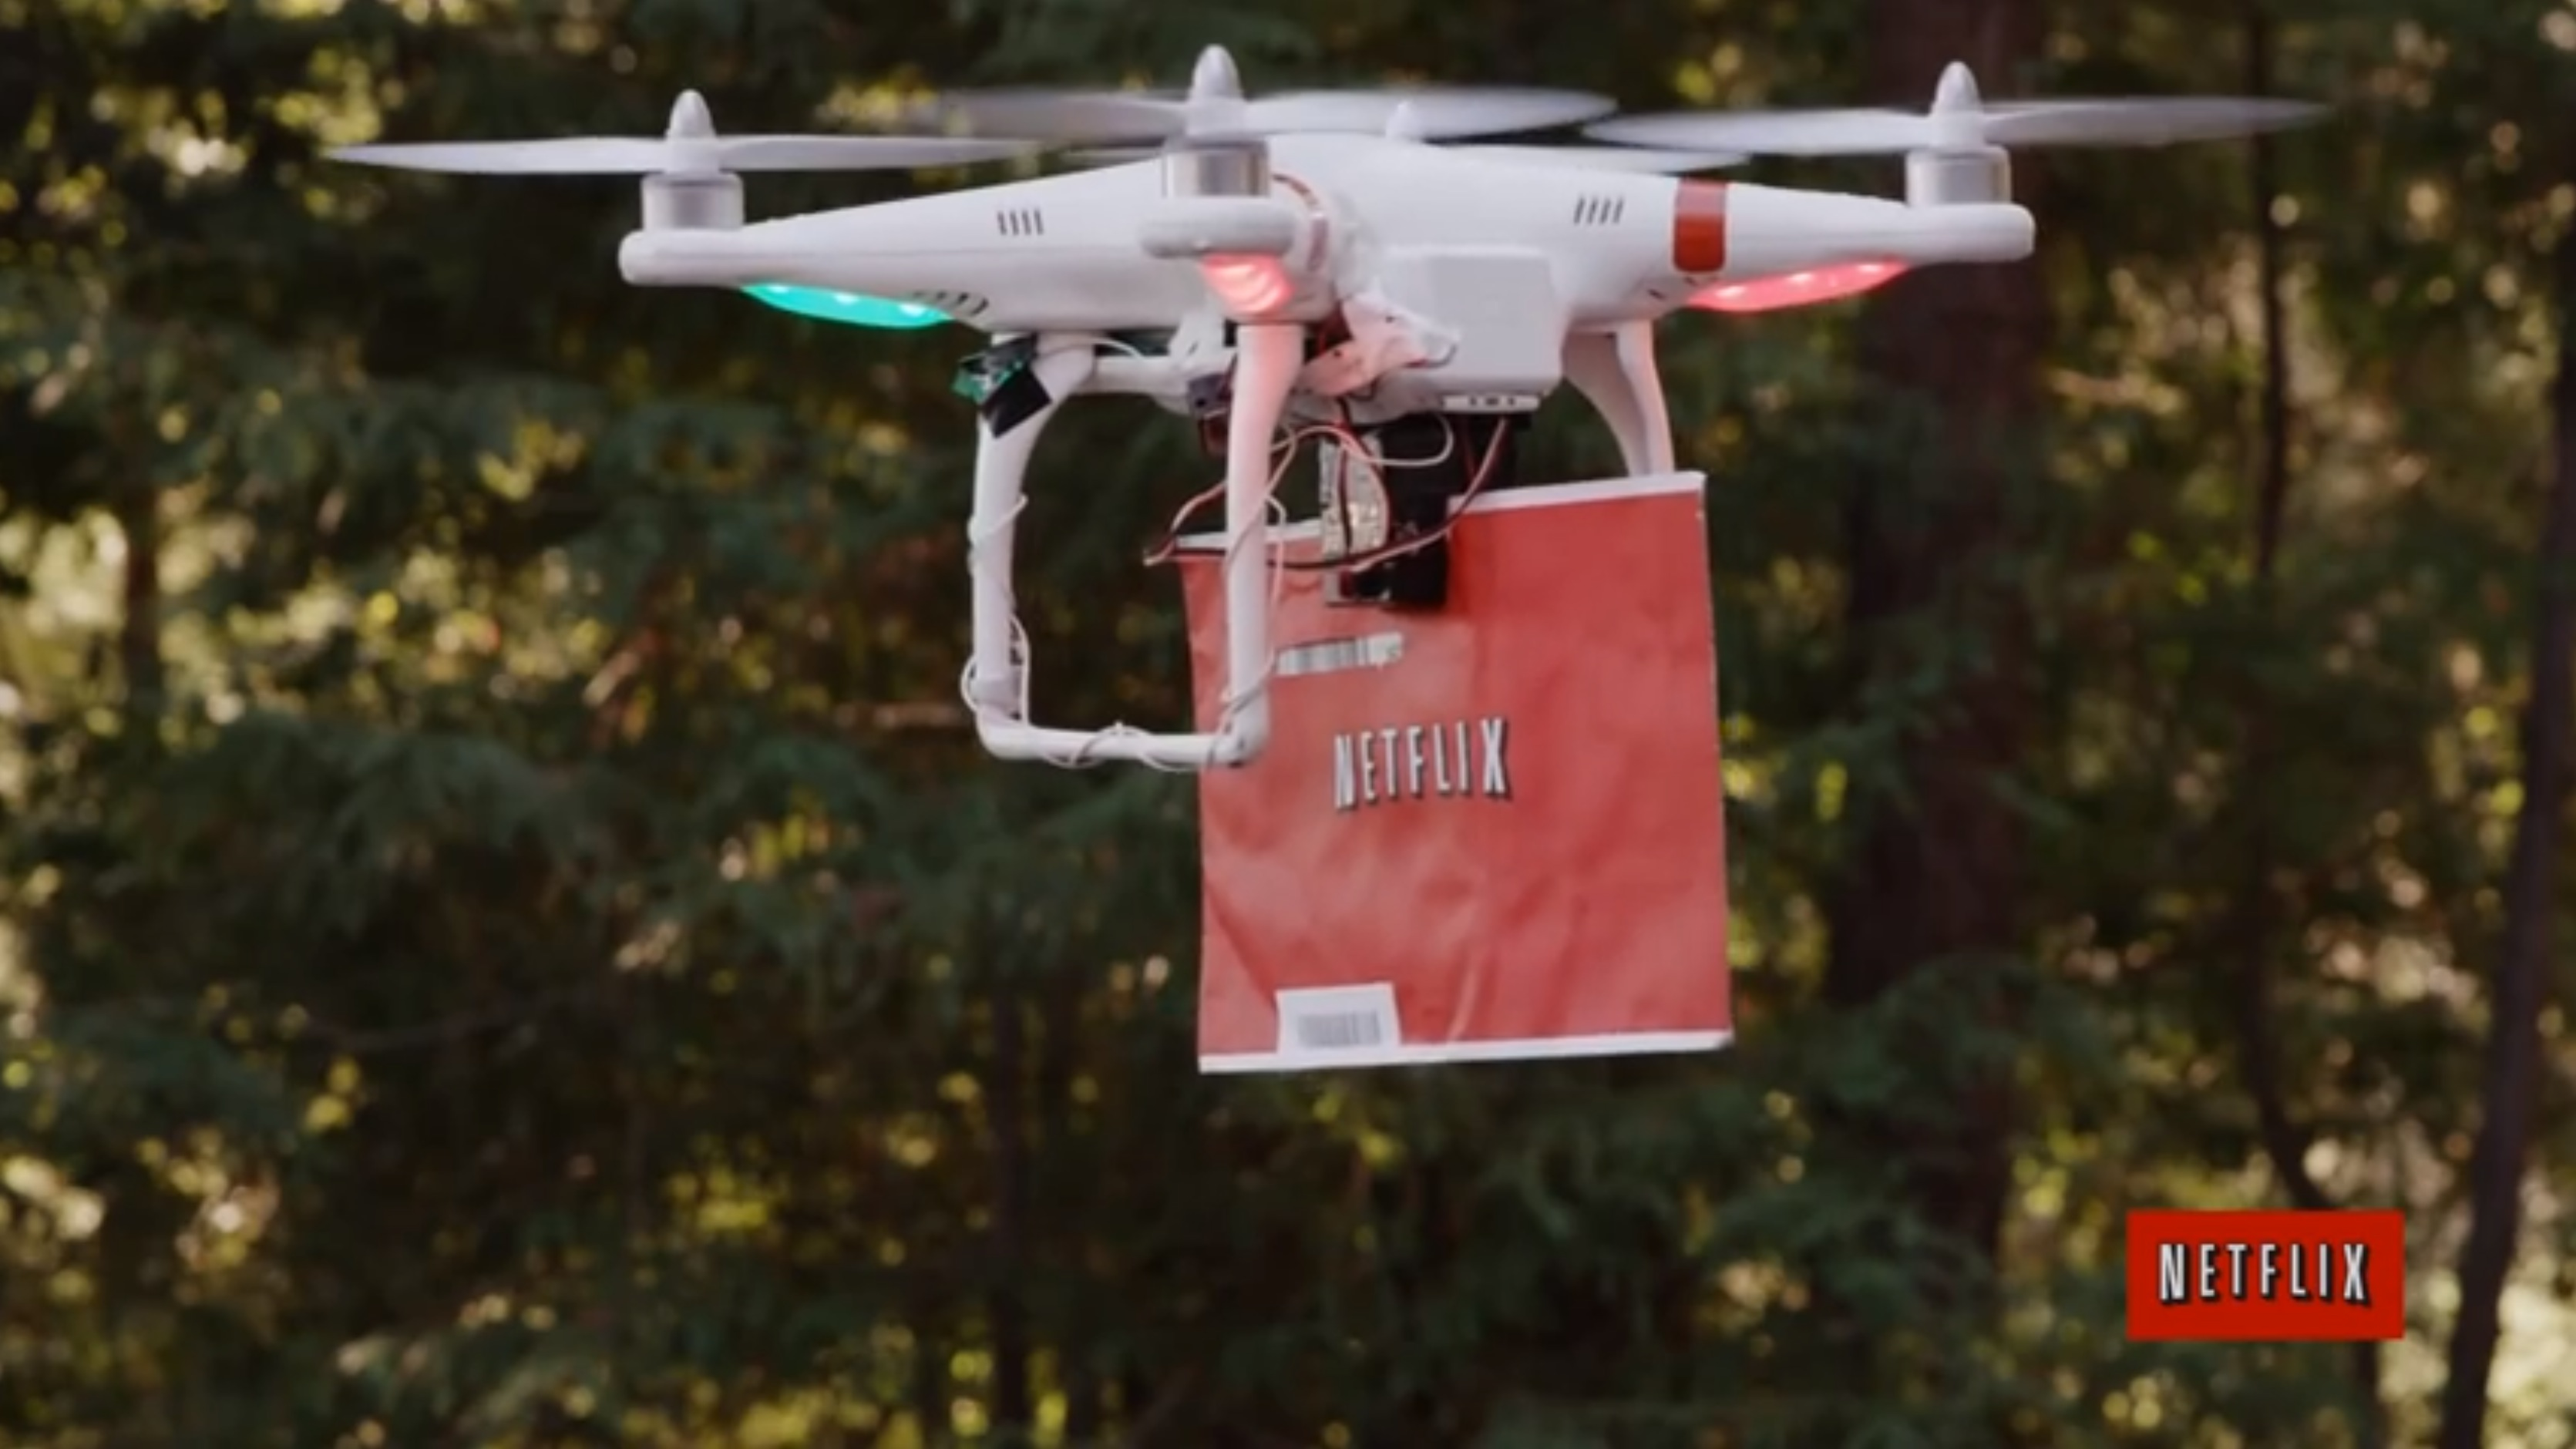 netflixdrone2home